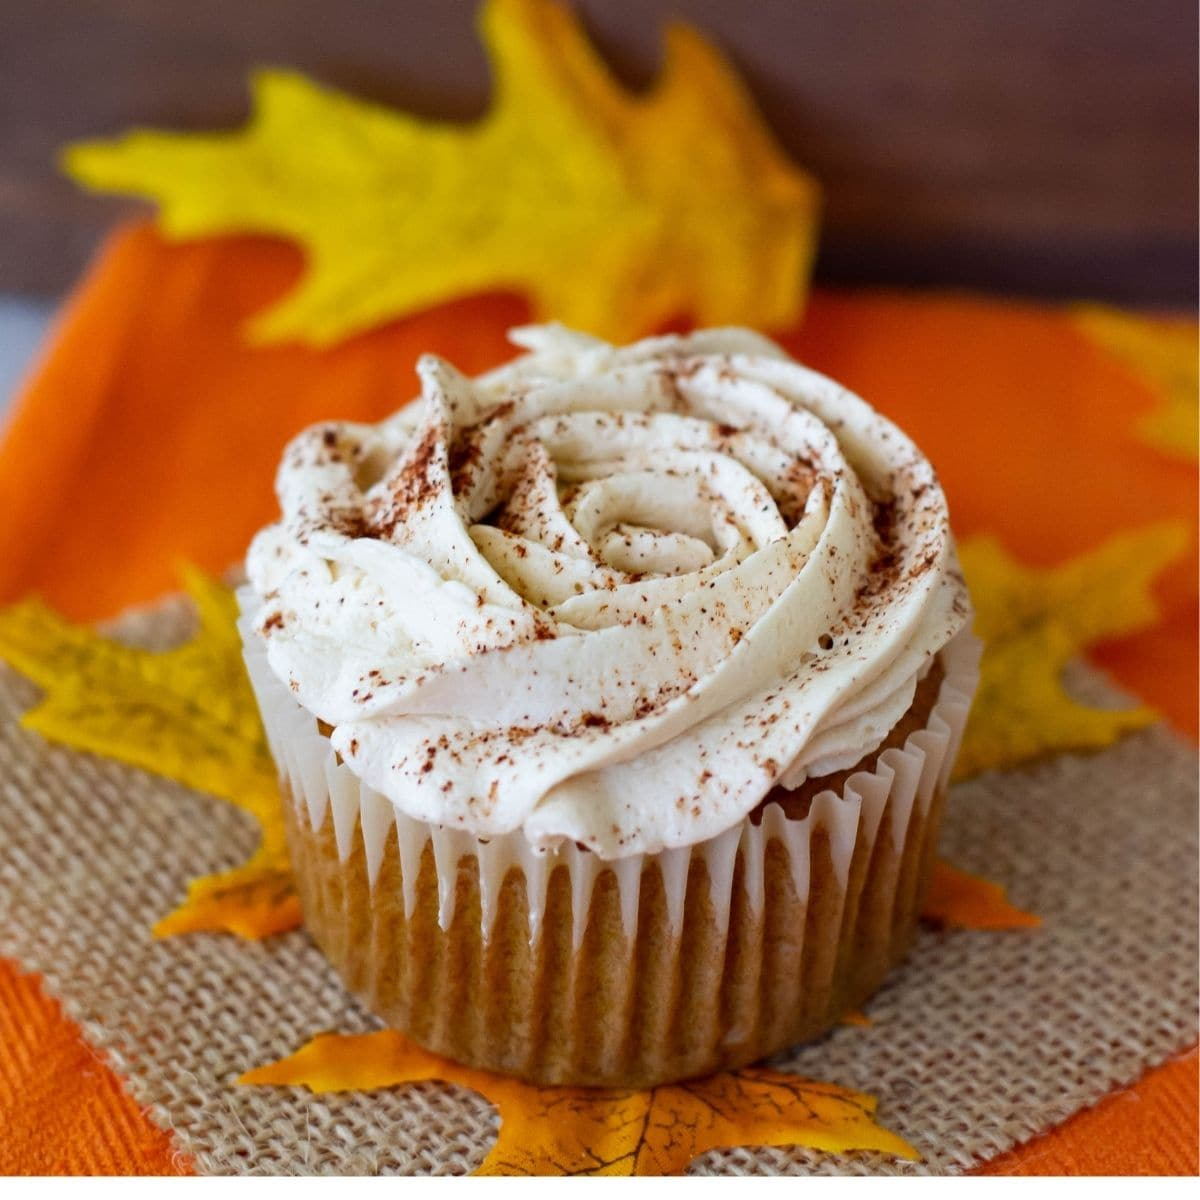 One Pumpkin Spice Cupcake on a fall tabletop.